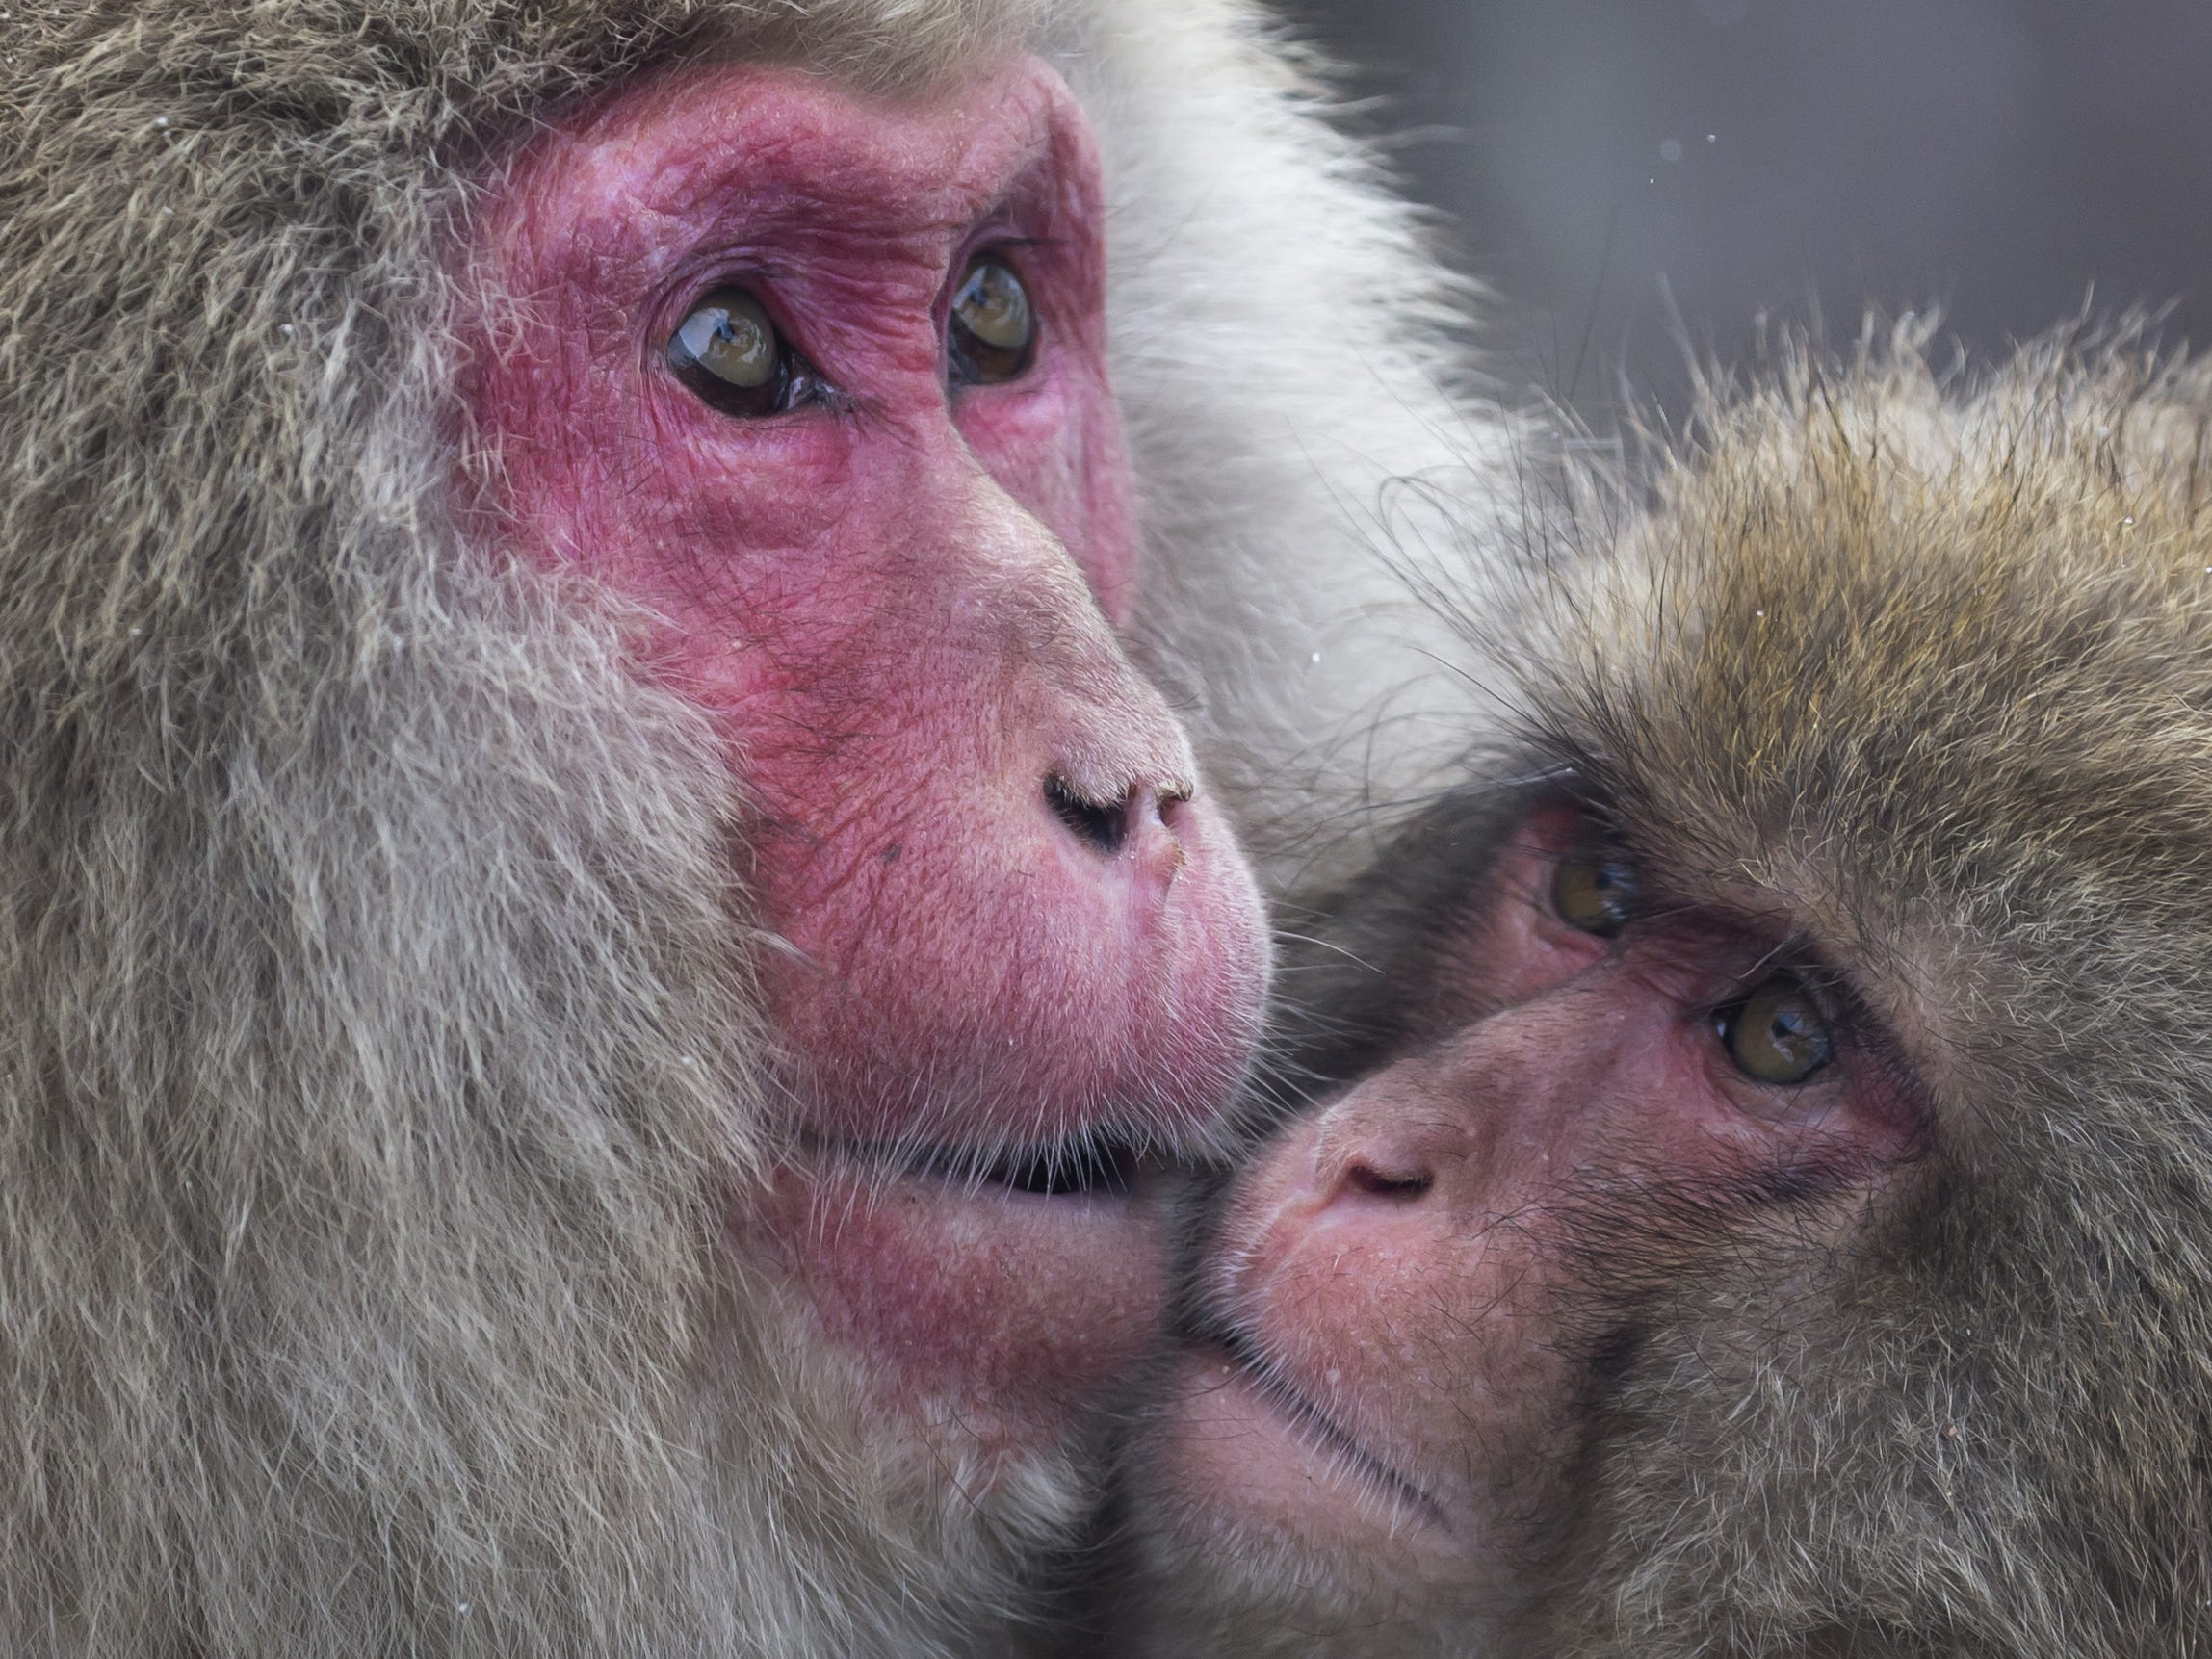 YAMANOUCHI, JAPAN - FEBRUARY 08: Macaque monkeys bathe in a hot spring at the Jigokudani Yaen-koen wild Macaque monkey park on February 8, 2019 in Yamanouchi, Japan. The wild Japanese macaques are known as snow monkeys, according to the park's official website. (Photo by Tomohiro Ohsumi/Getty Images) ORG XMIT: 775292339 ORIG FILE ID: 1128215952